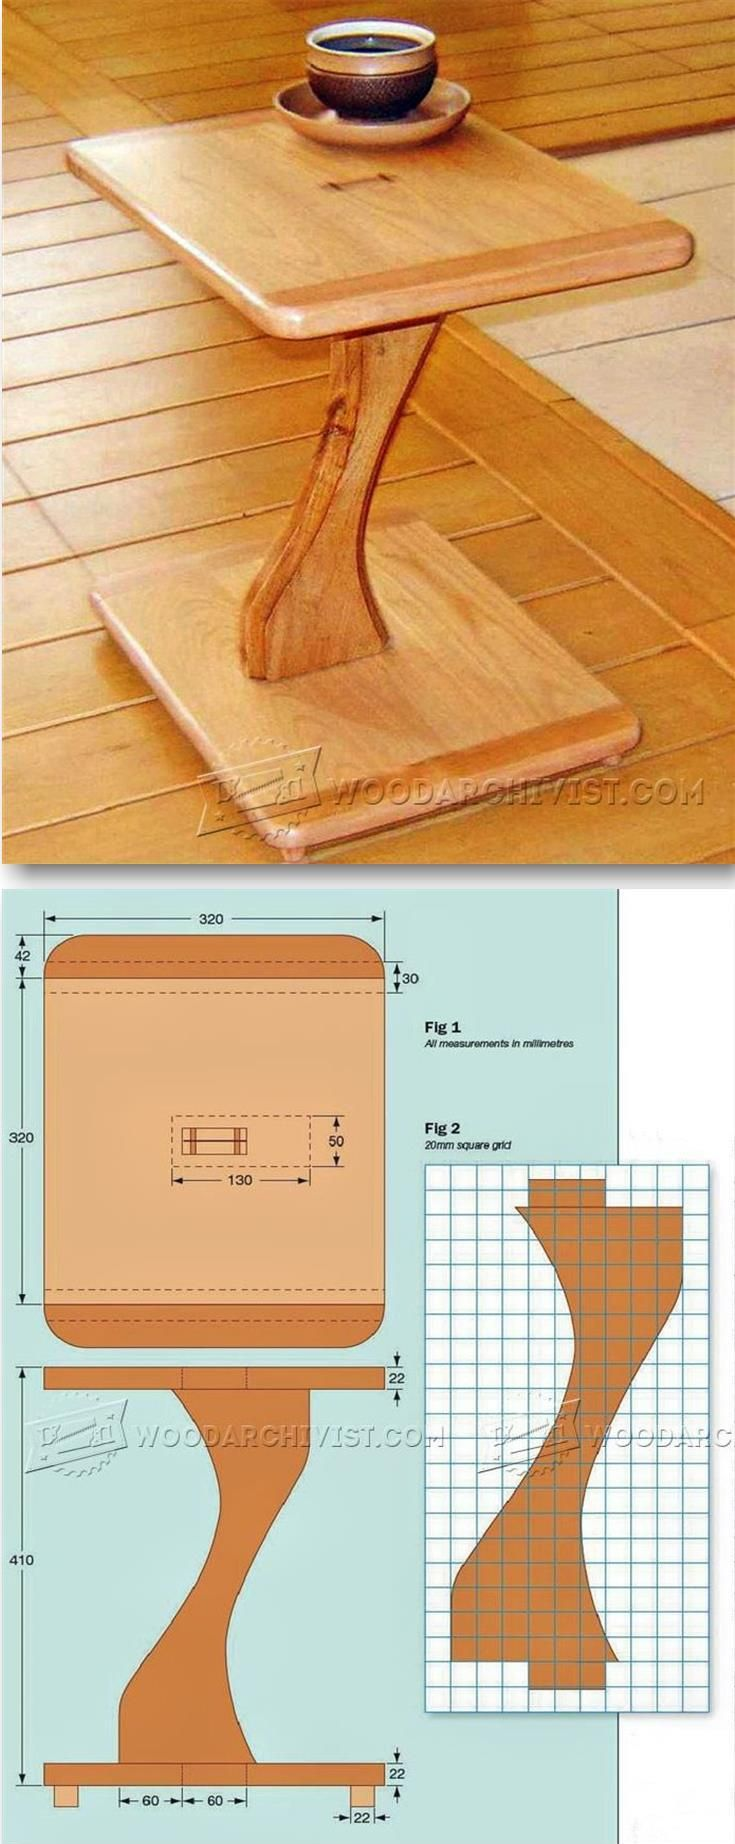 Pedestal Table Plans - Furniture Plans and Projects | WoodArchivist.com